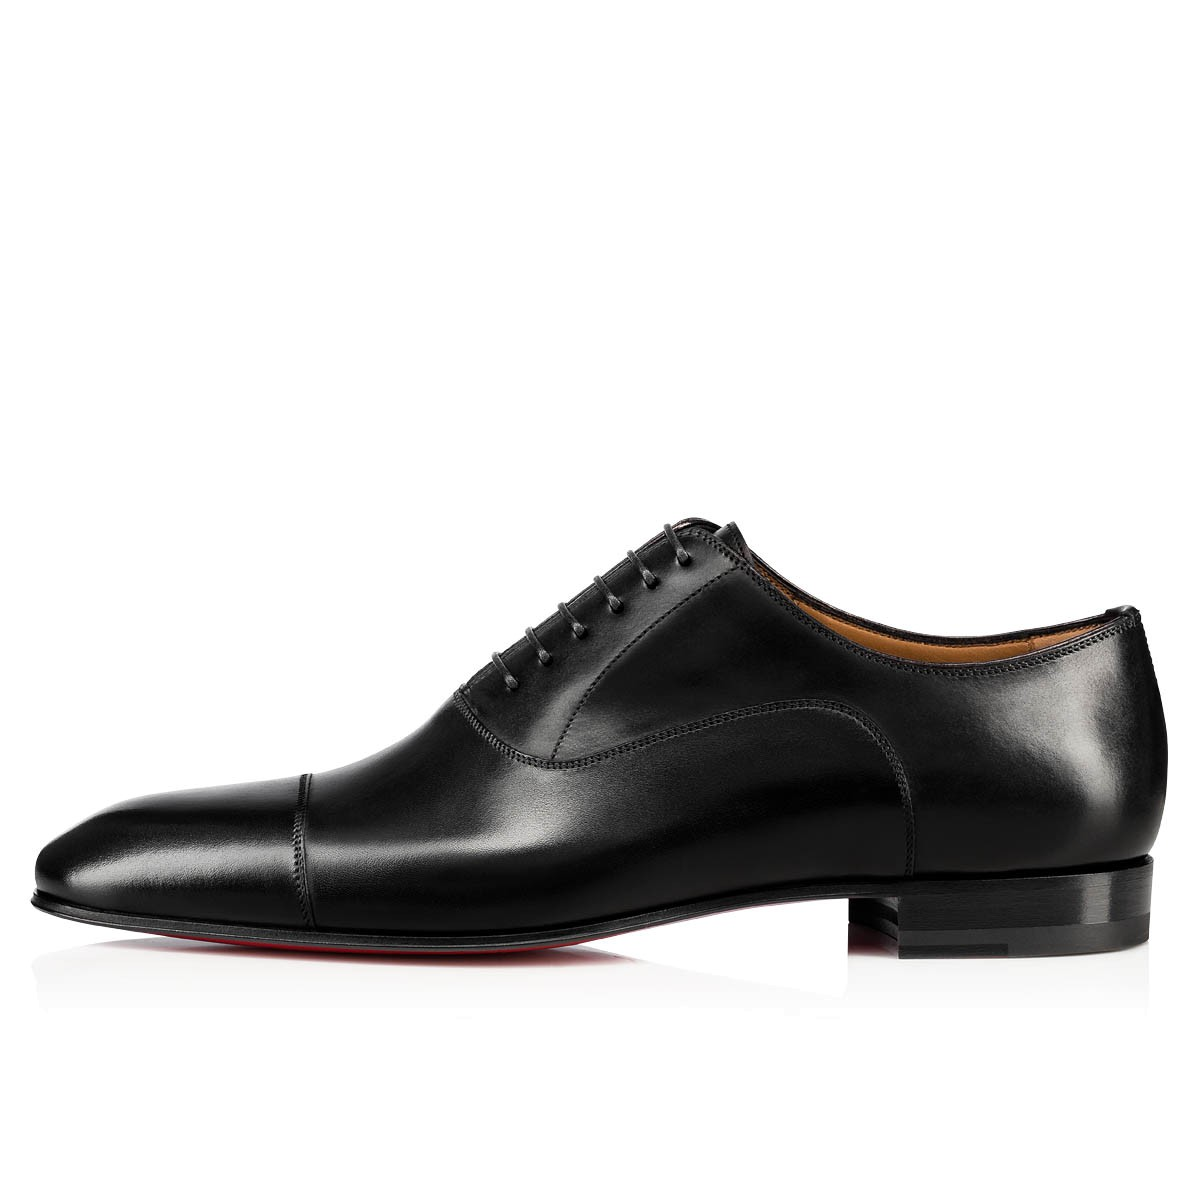 Men Shoes - Greggo - Christian Louboutin